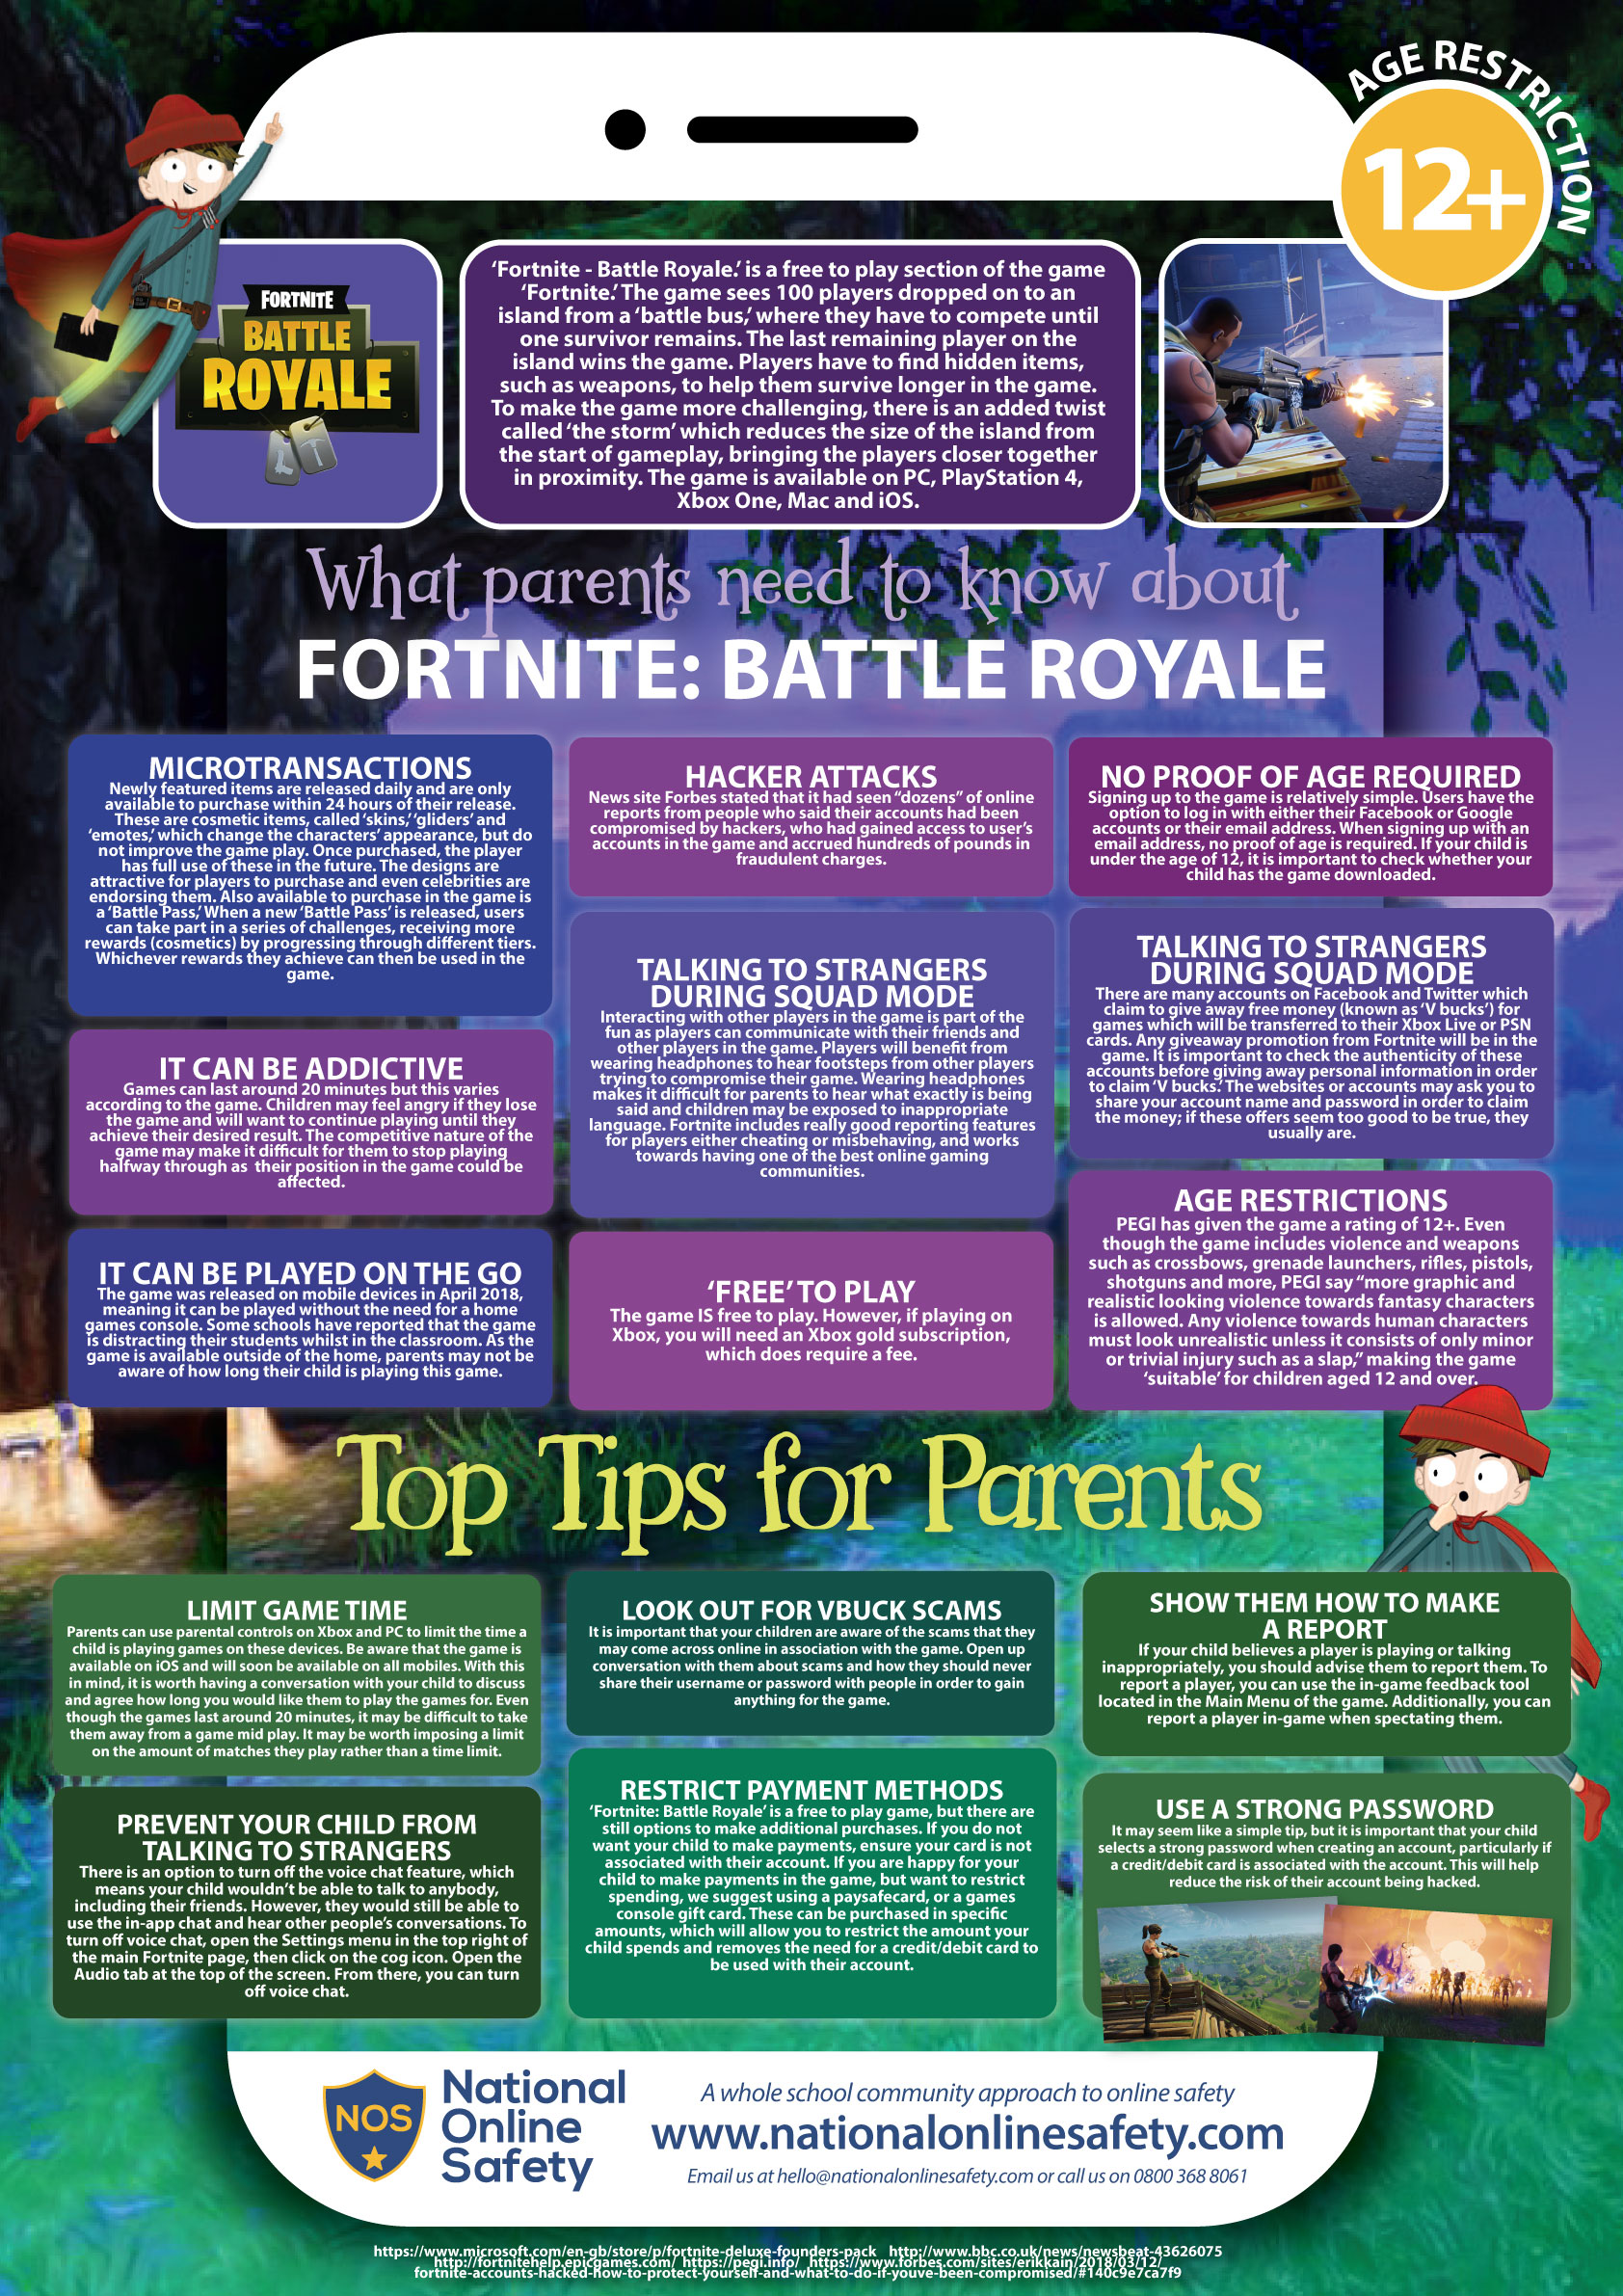 Fortnite Safety from National Online Safety Alliance